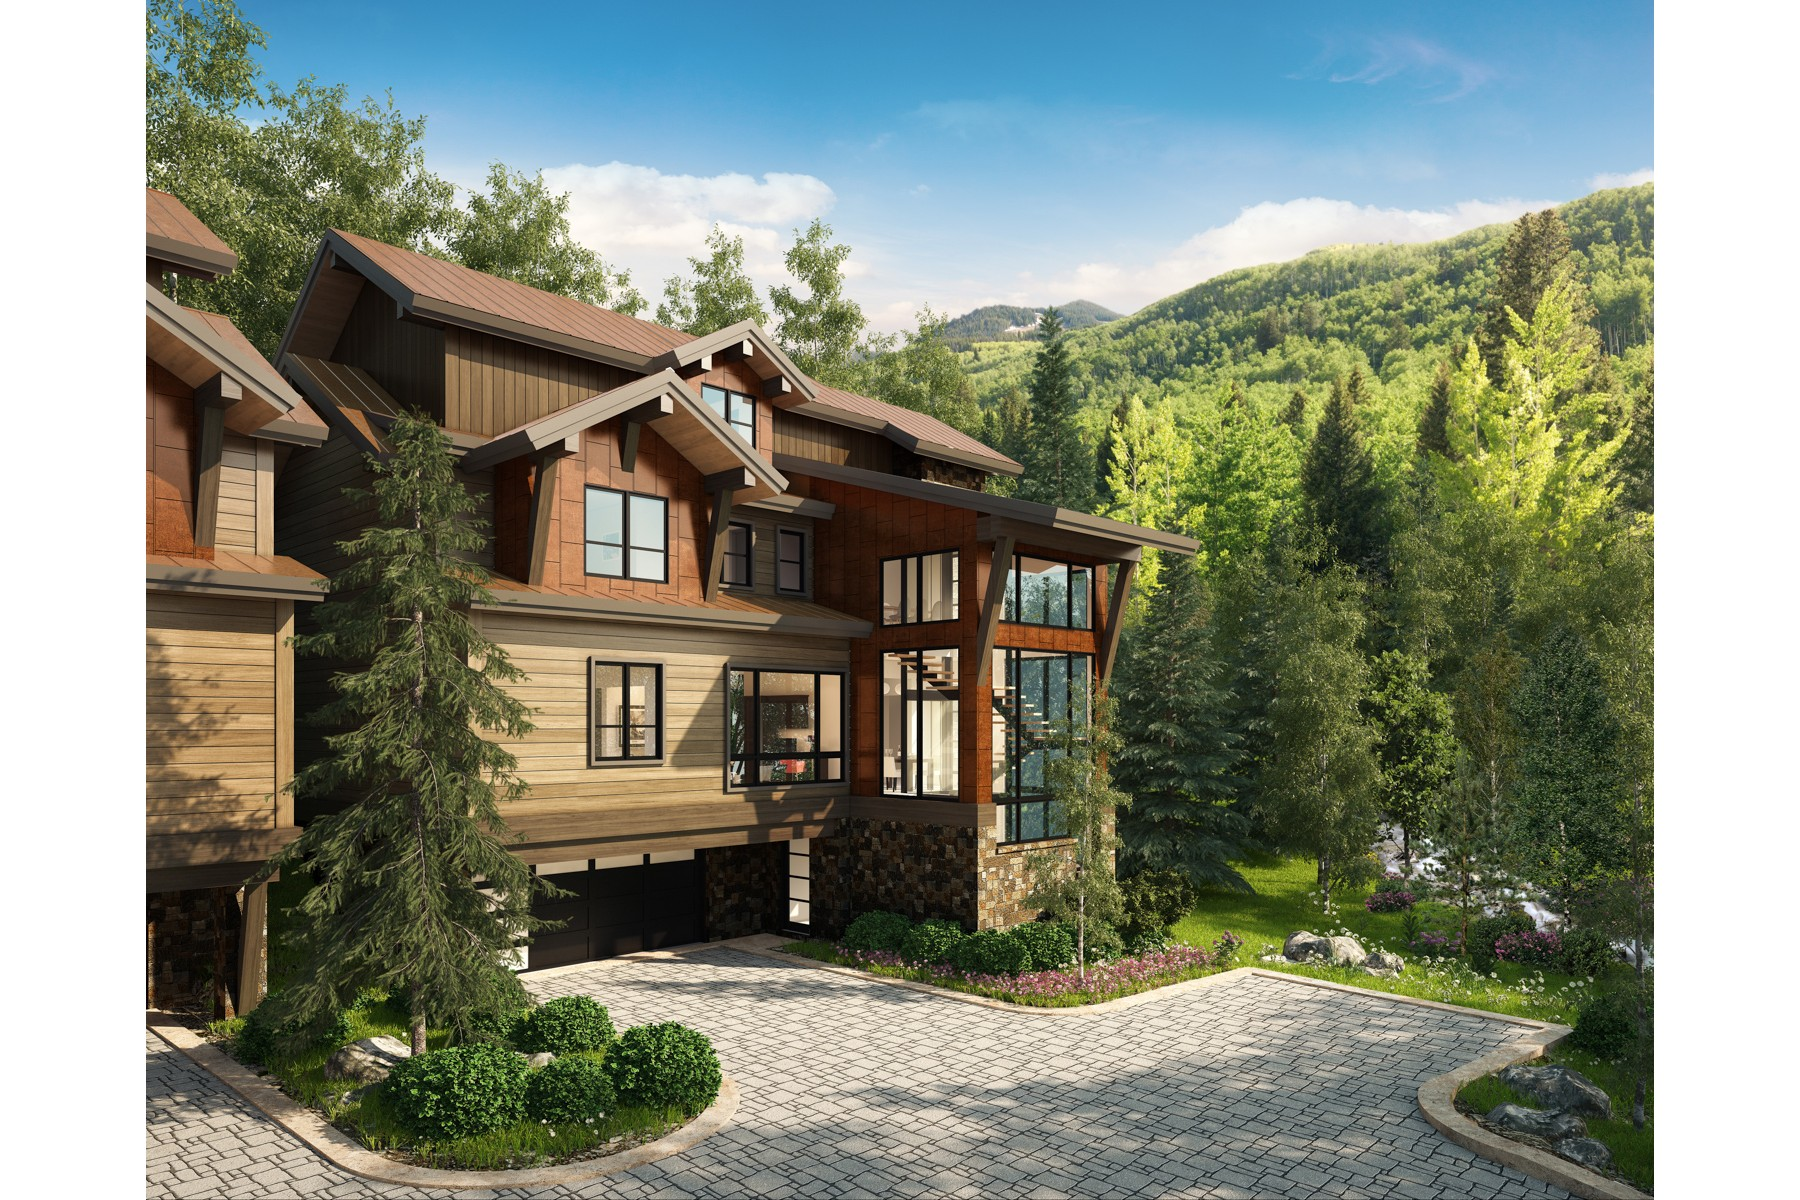 Single Family Home for Active at Peregrine Villas 191 Elk Track Road Beaver Creek, Colorado 81620 United States